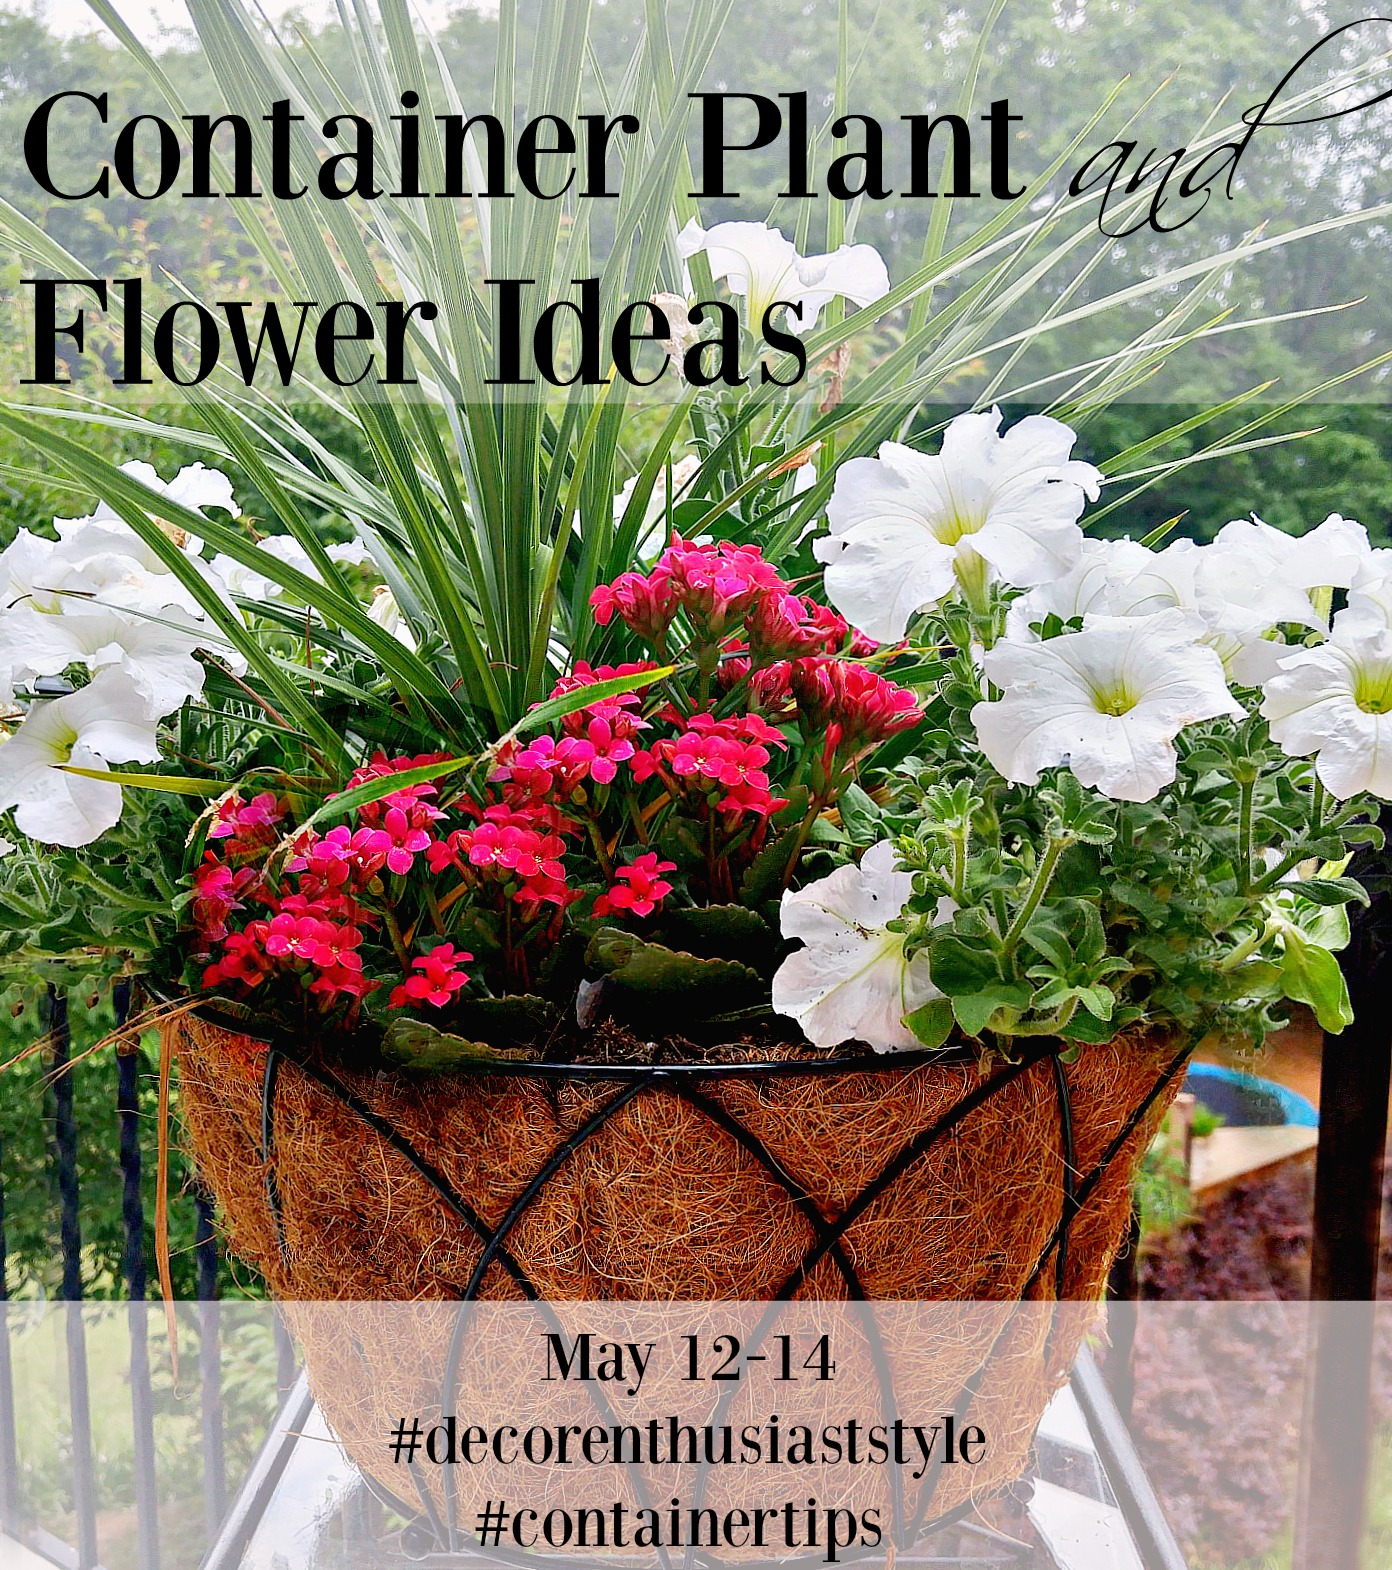 Getting The Most Out Of Your Gardening... Using Containers